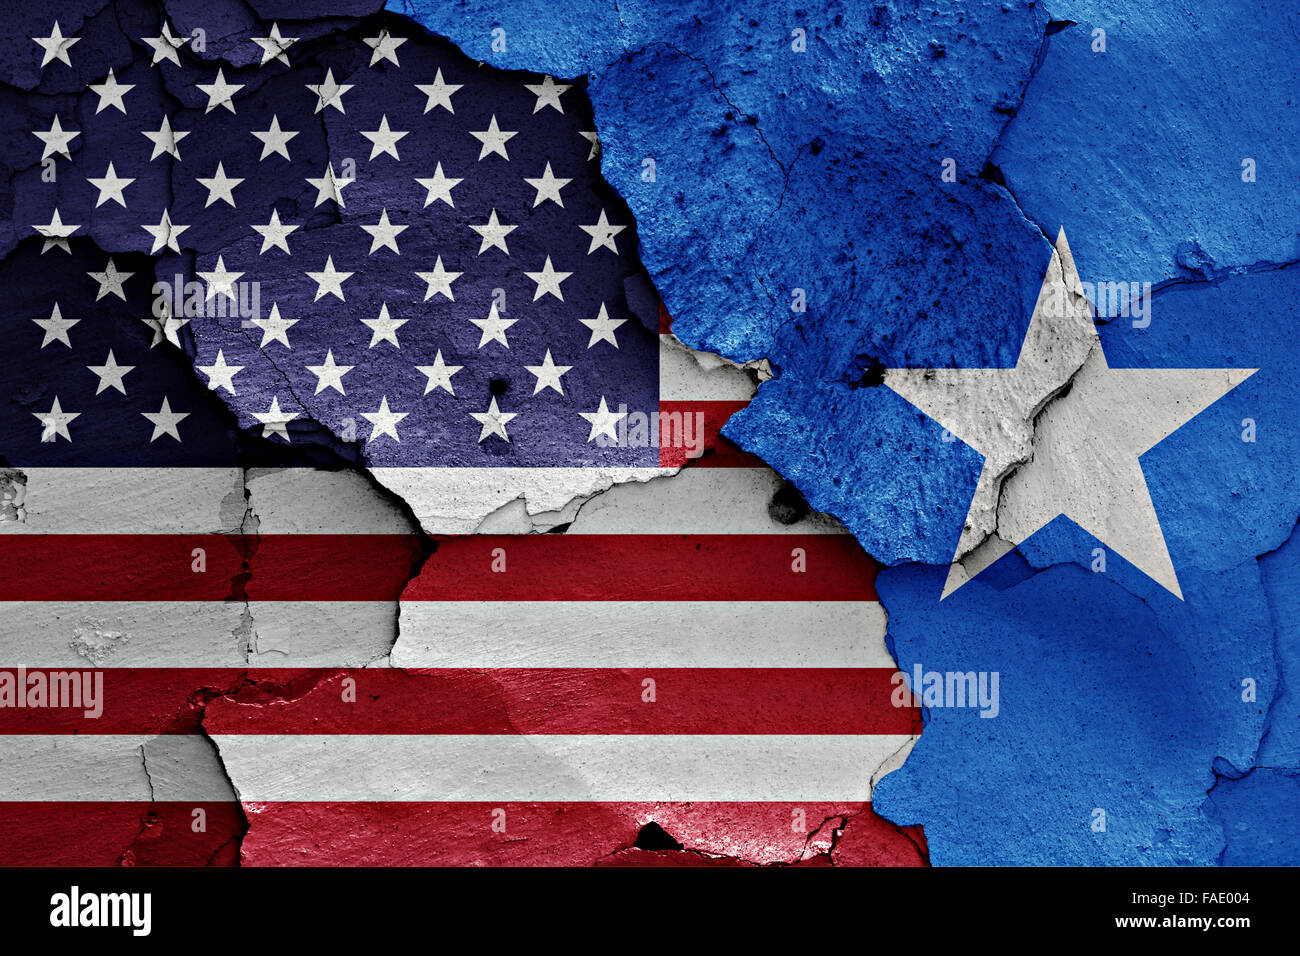 flags of USA and Somalia painted on cracked wall - Stock Image